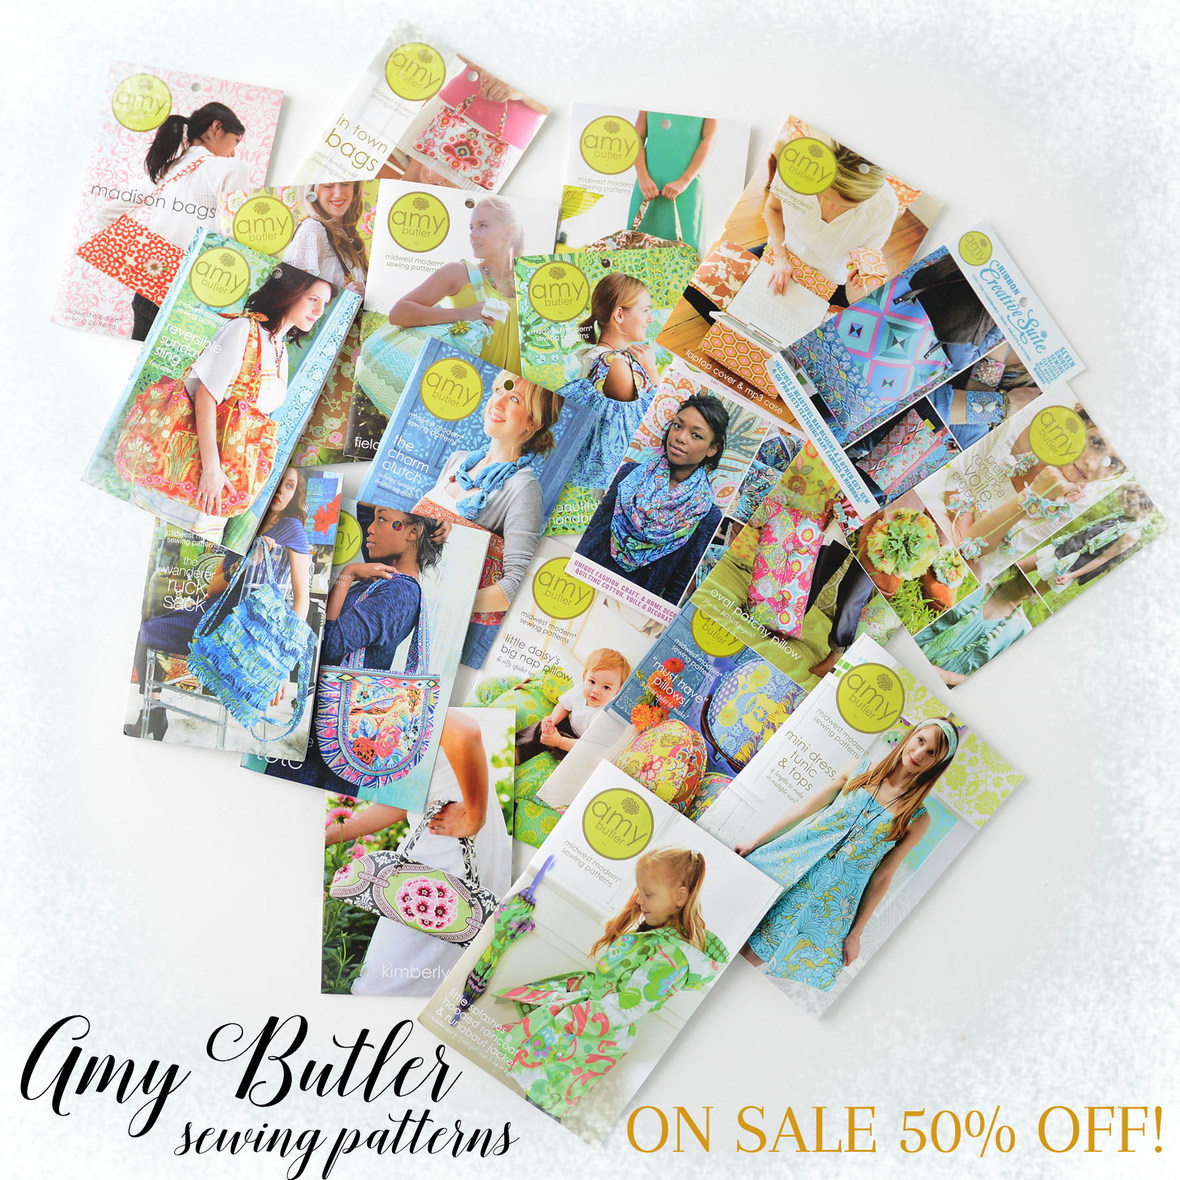 Amy Butler Sewing Patterns on Sale with frosty border 2 6x6